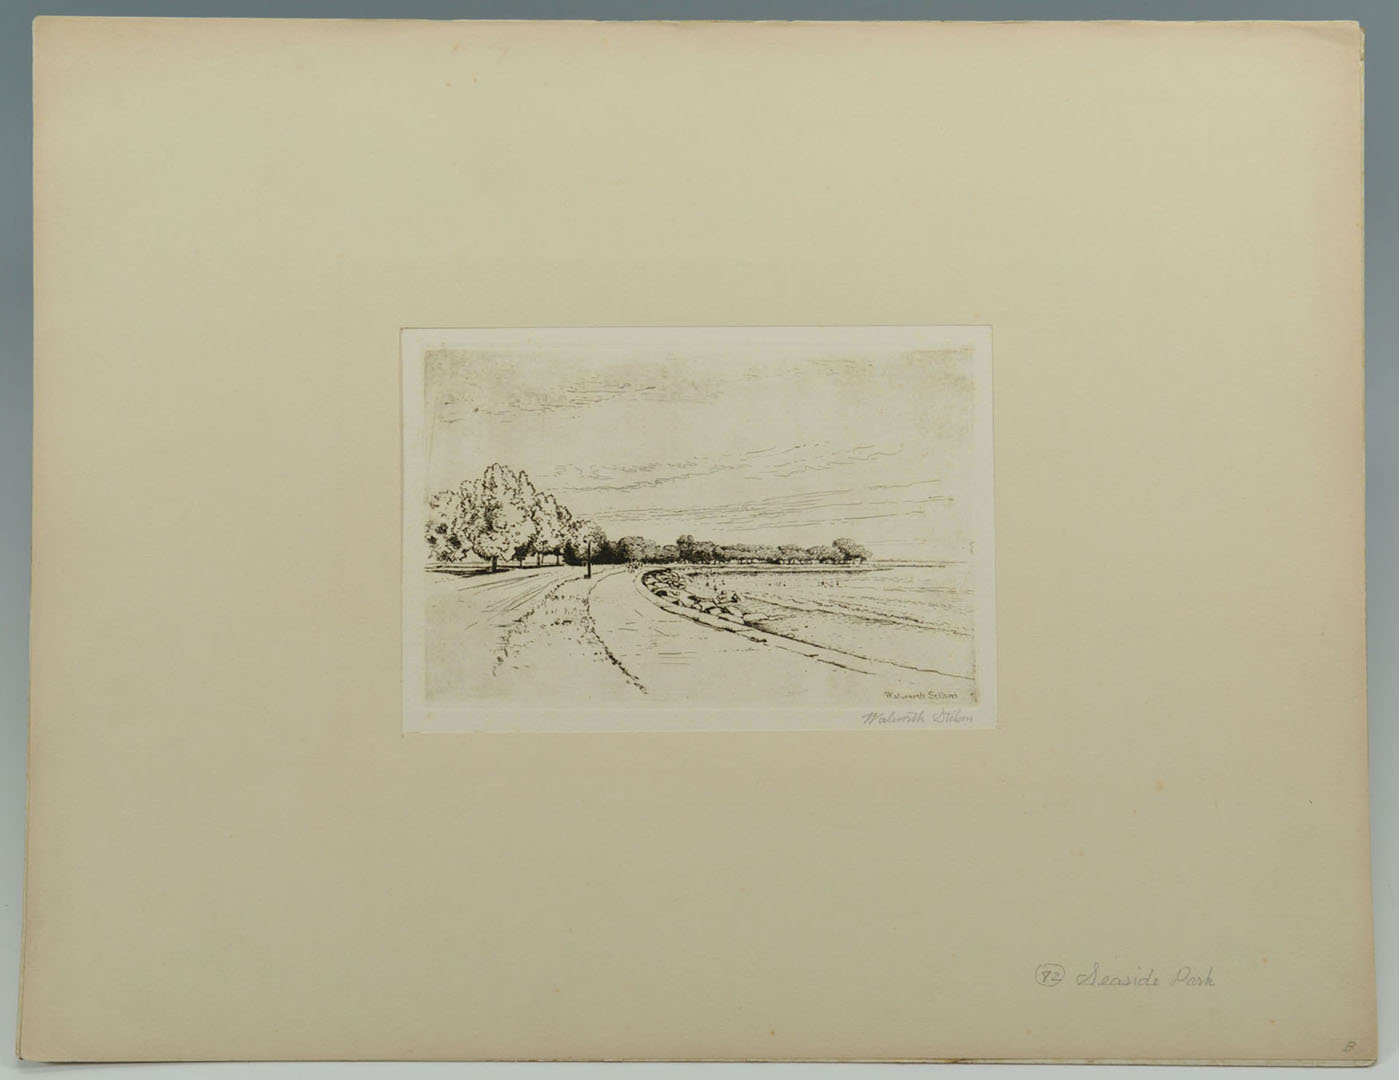 Lot 2872266: Walworth Stilson Etchings of New York, 7 total